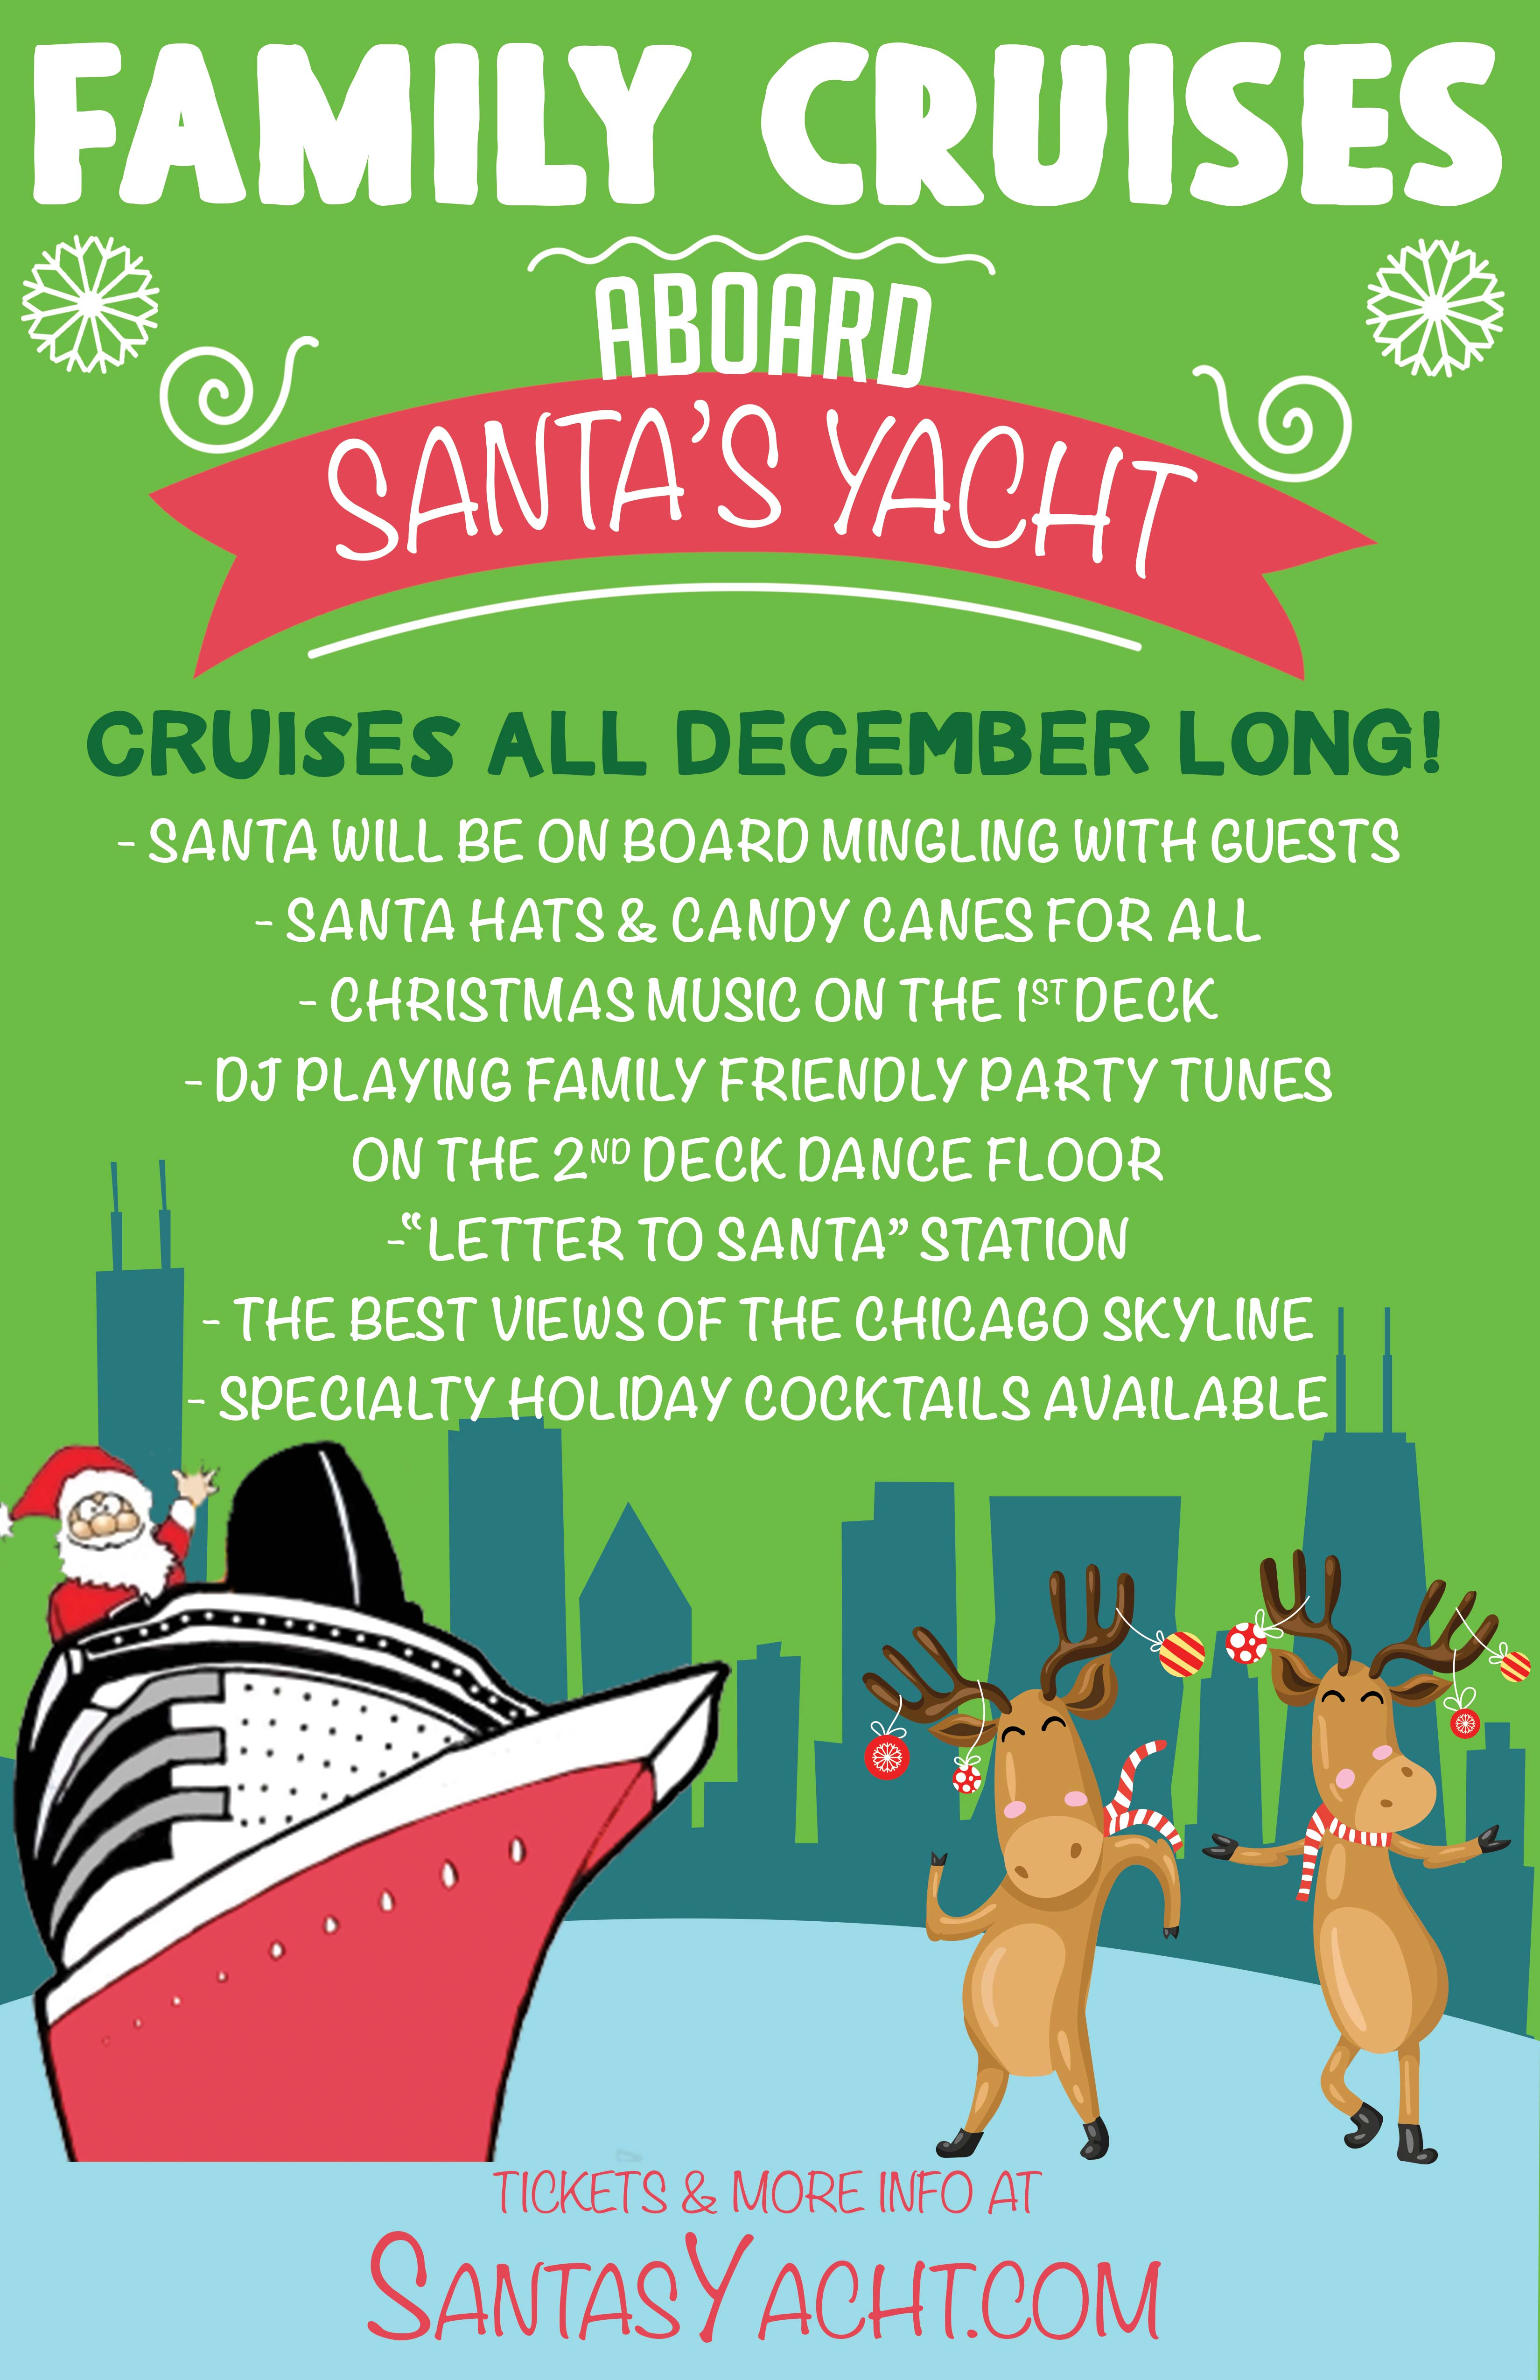 Family Christmas Cruise Party on Lake Michigan - Tickets Include a Live DJ, Candy Canes and Santa Hats for All